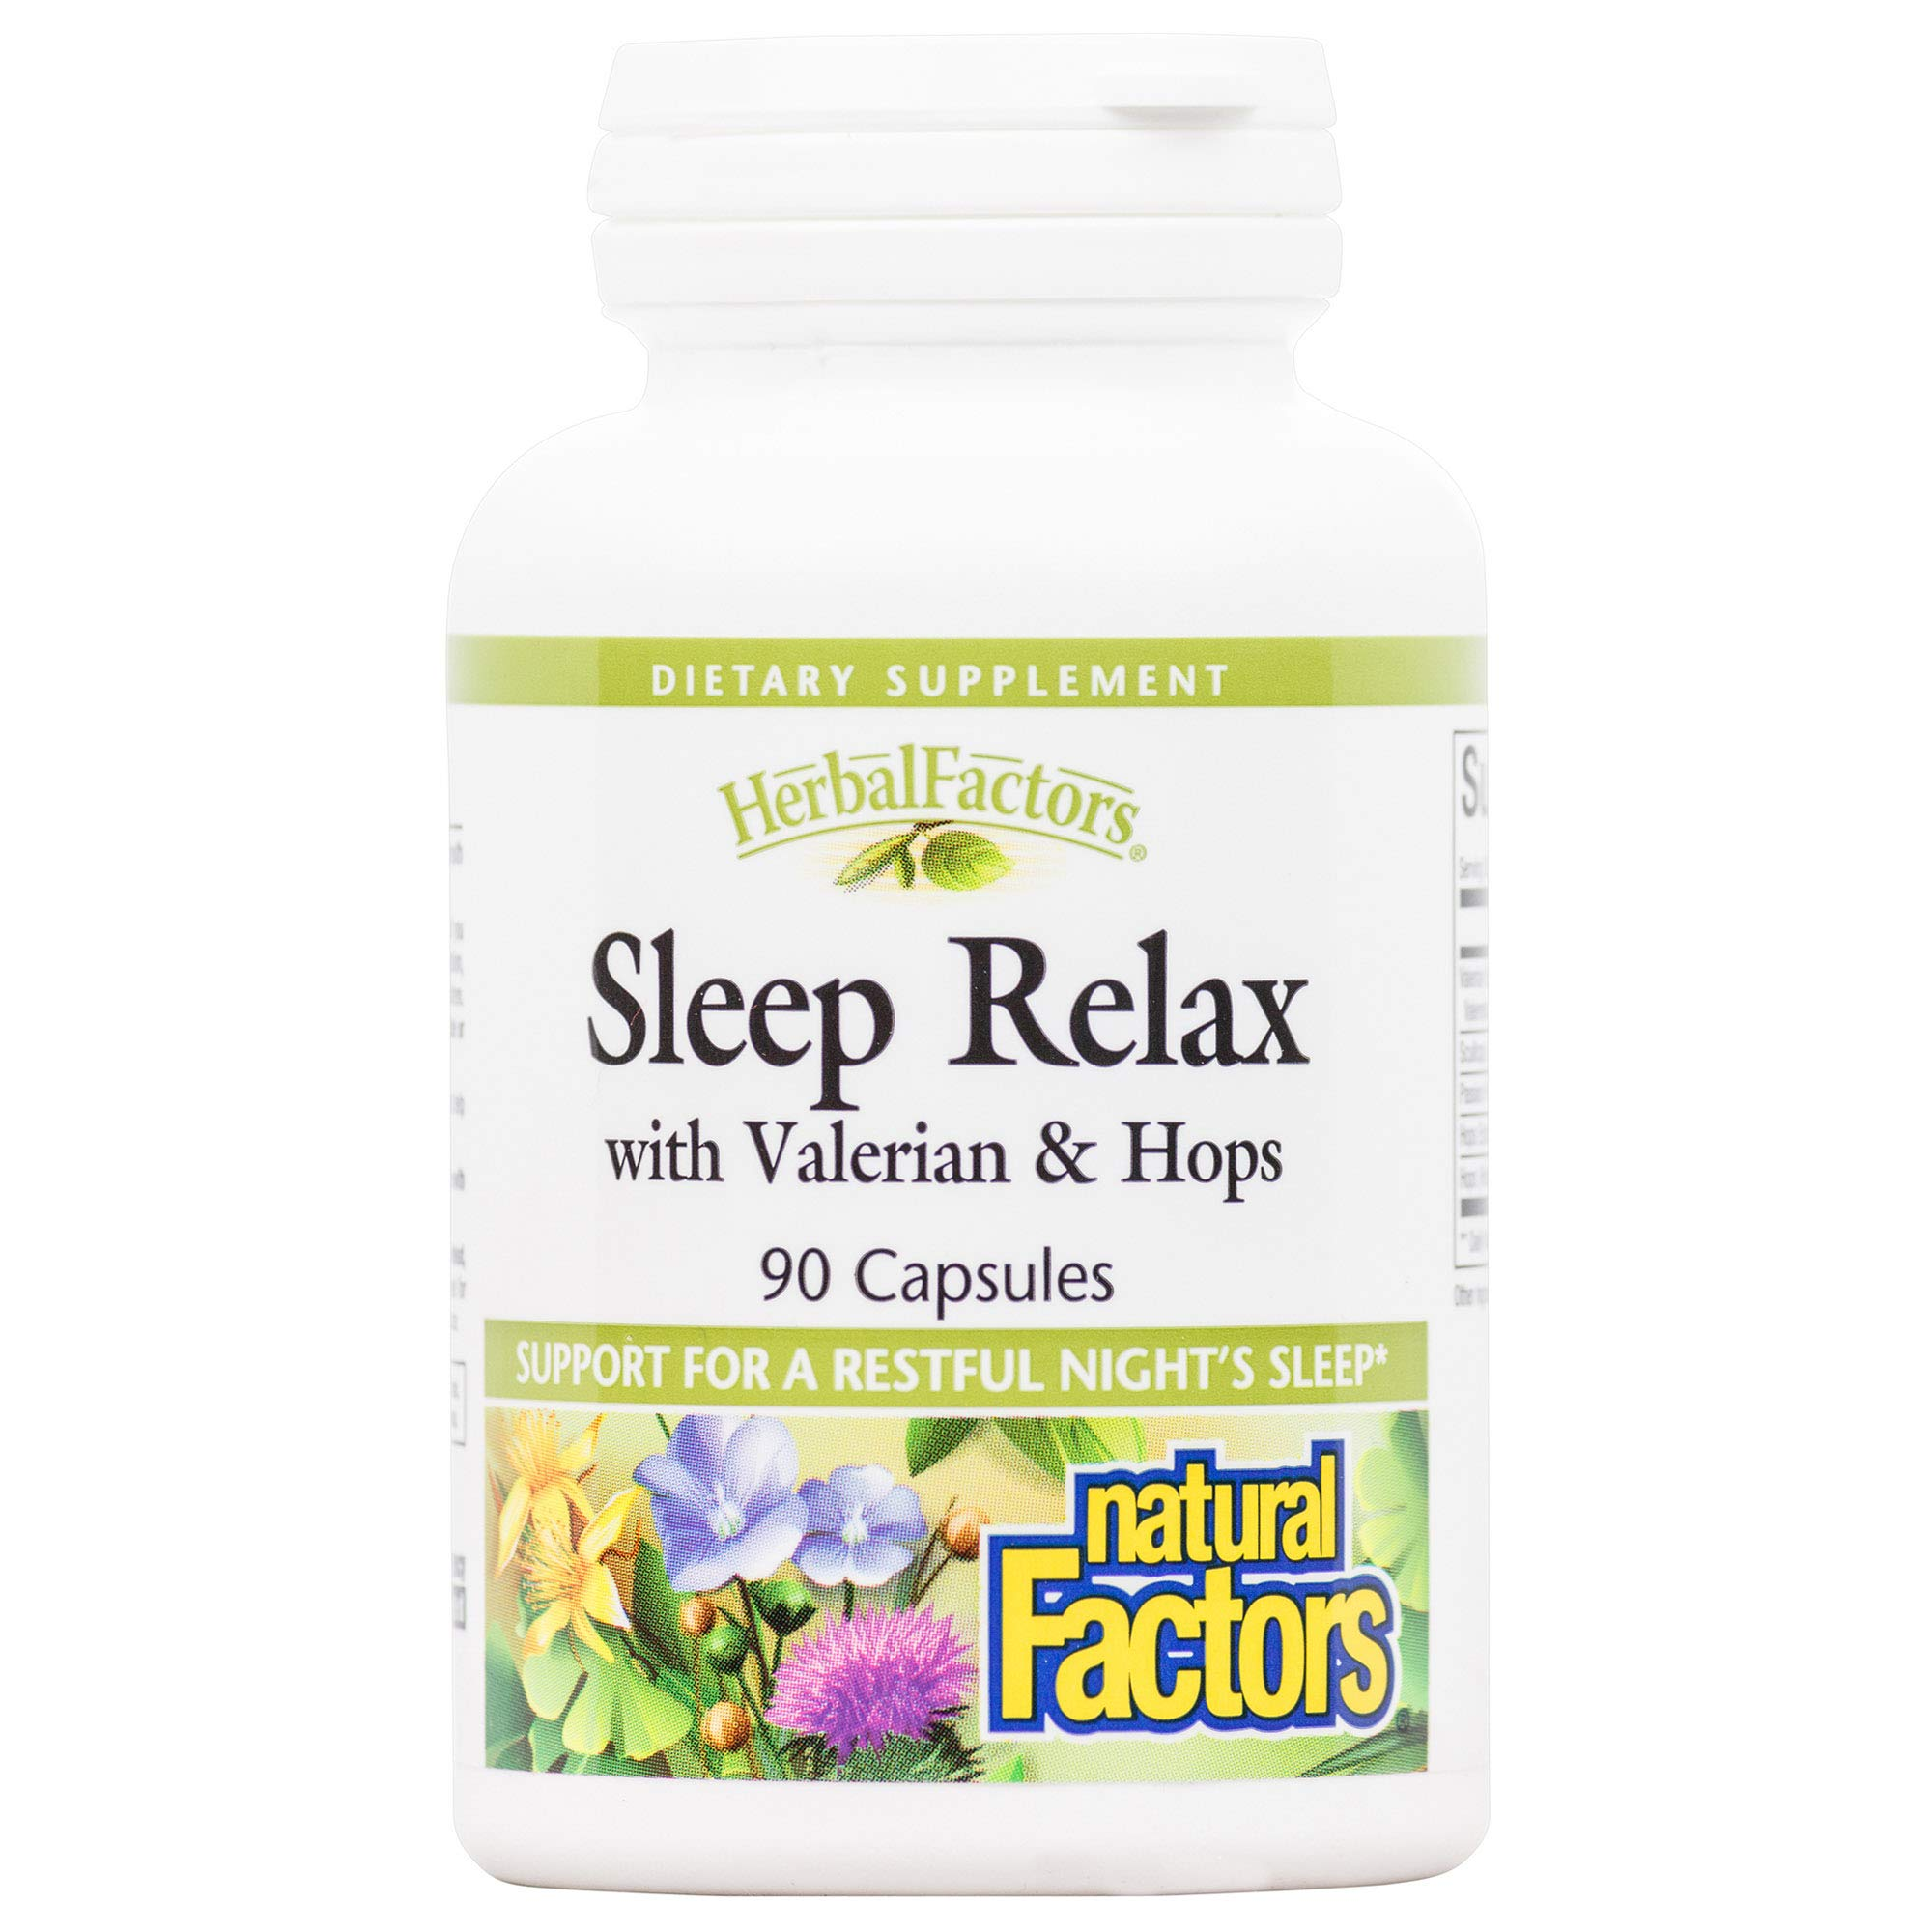 Herbal Factors Sleep Relax Formula by Natural Factors, Natural Sleep Aid with Valerian Root, Passion Flower and Skullcap, Non-GMO, 90 capsules (90 servings)